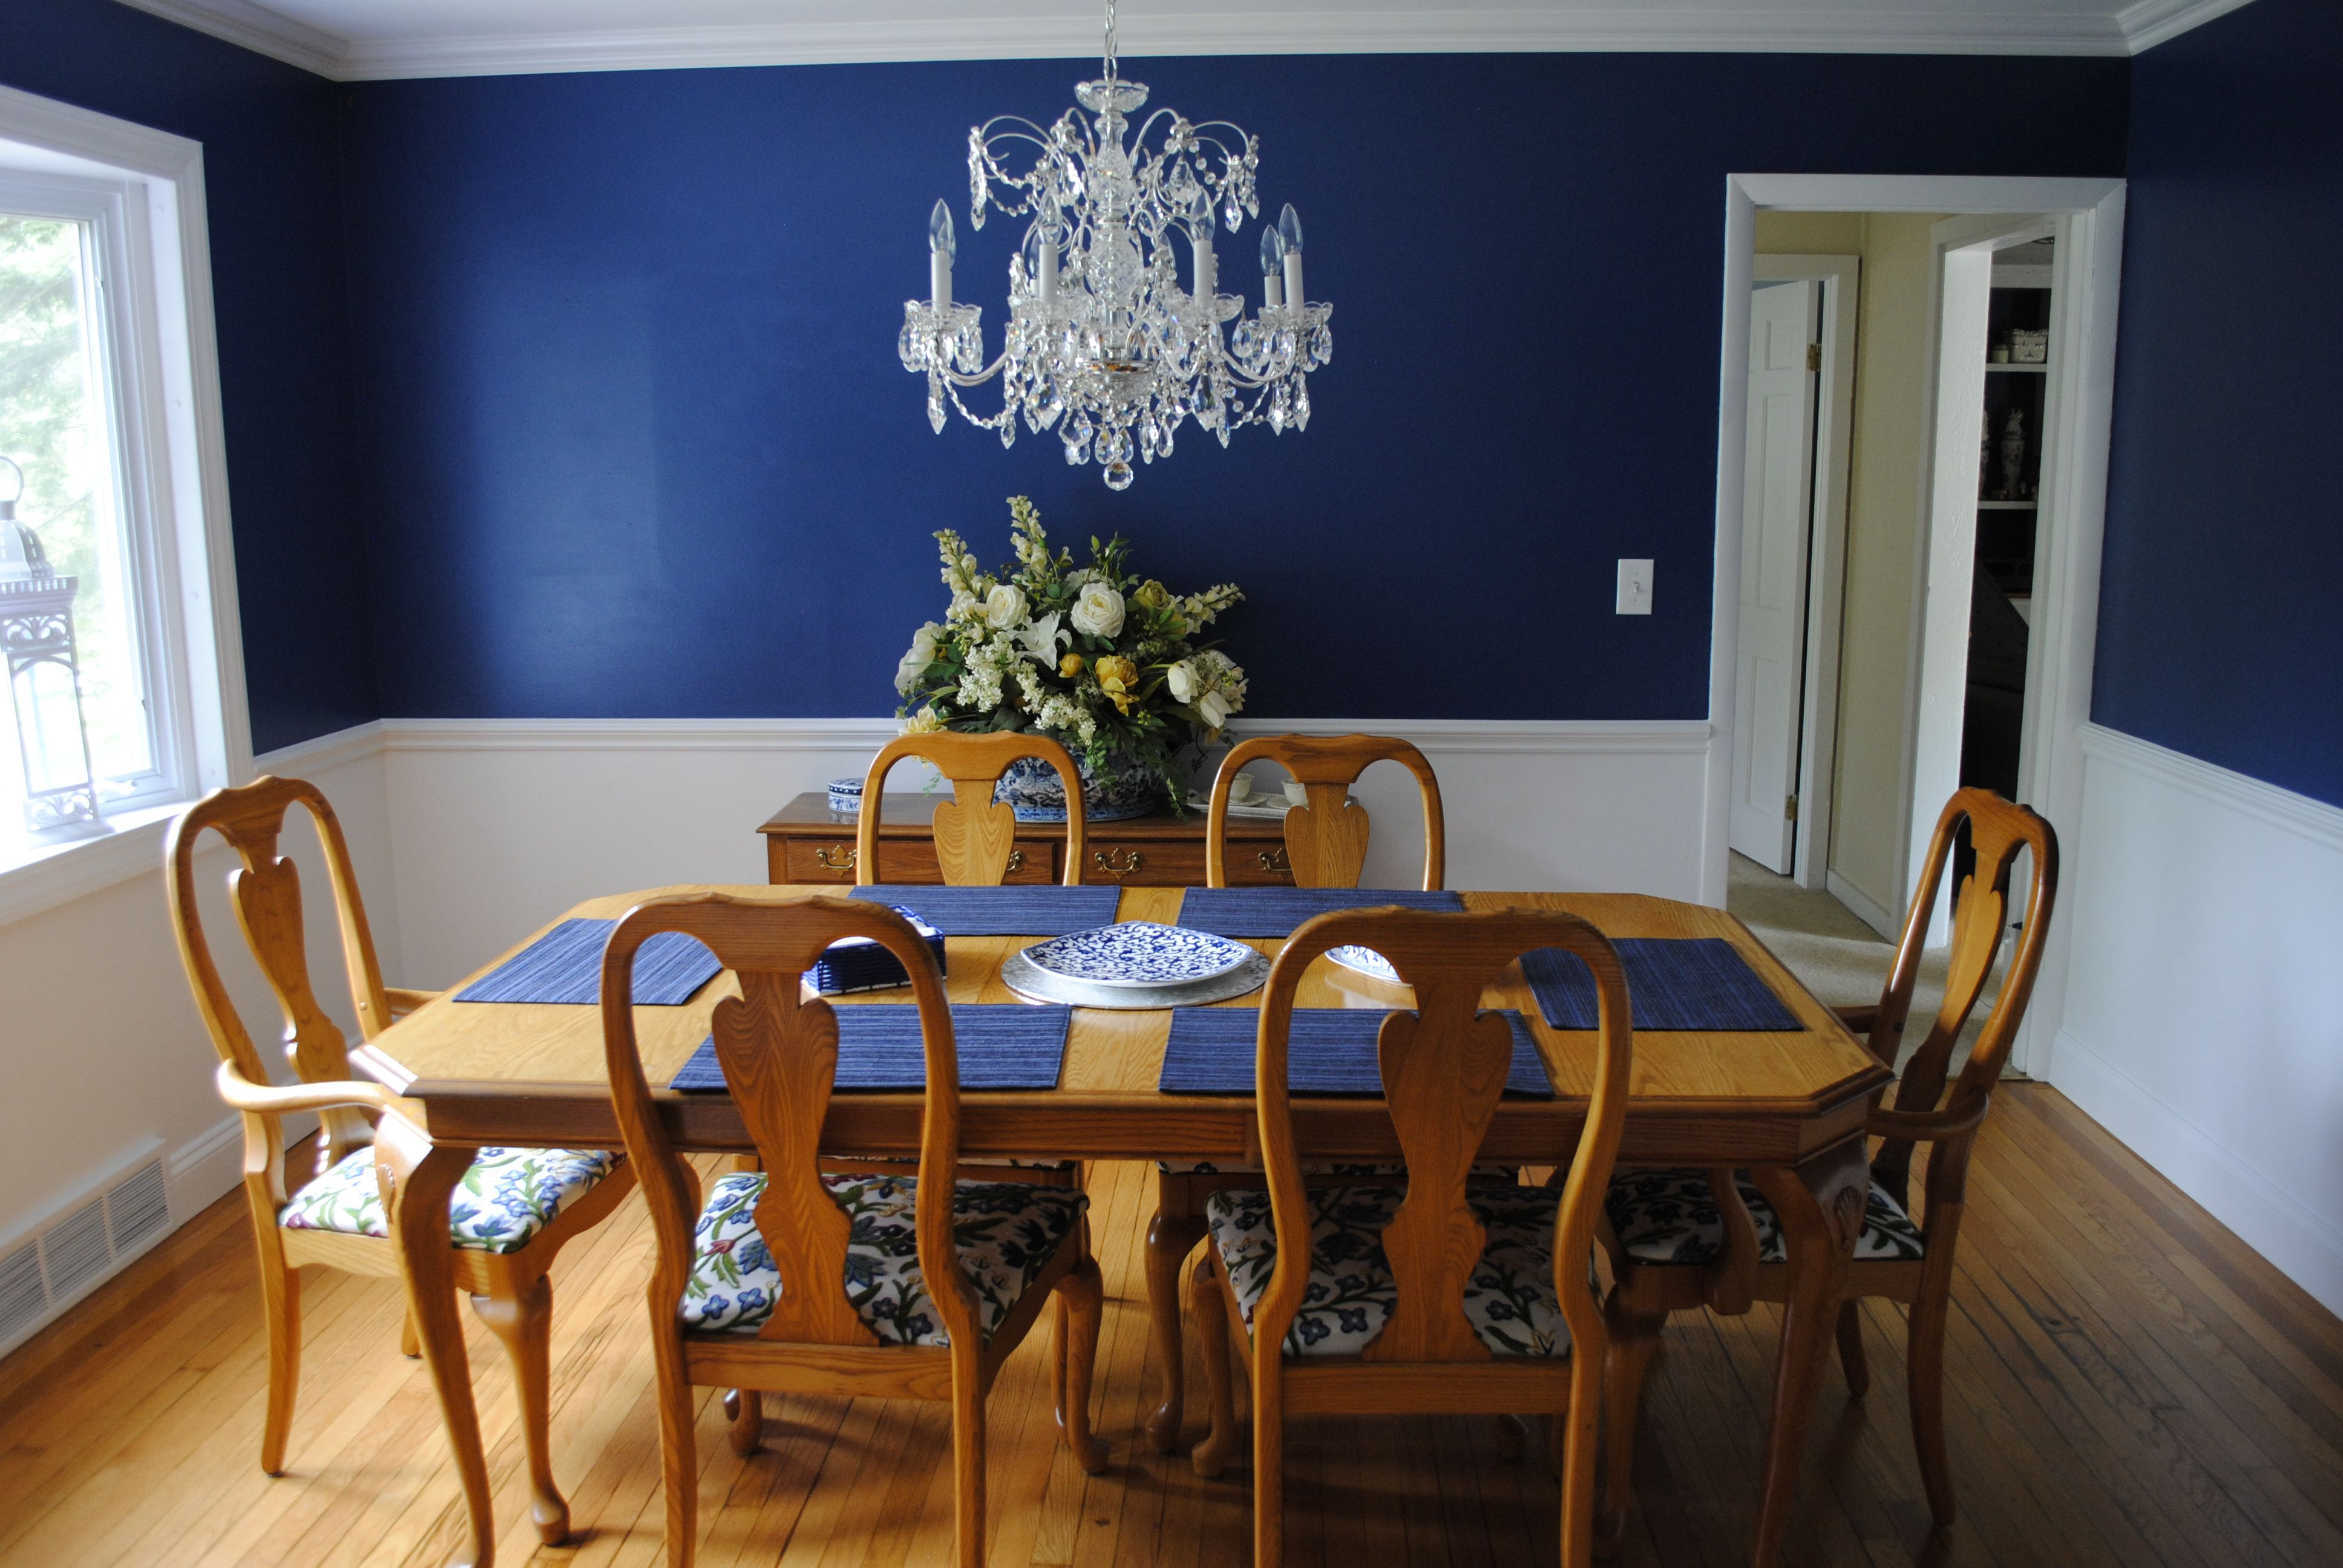 Pin By Leftlanelauren On Home Sweet Home Dining Room Blue